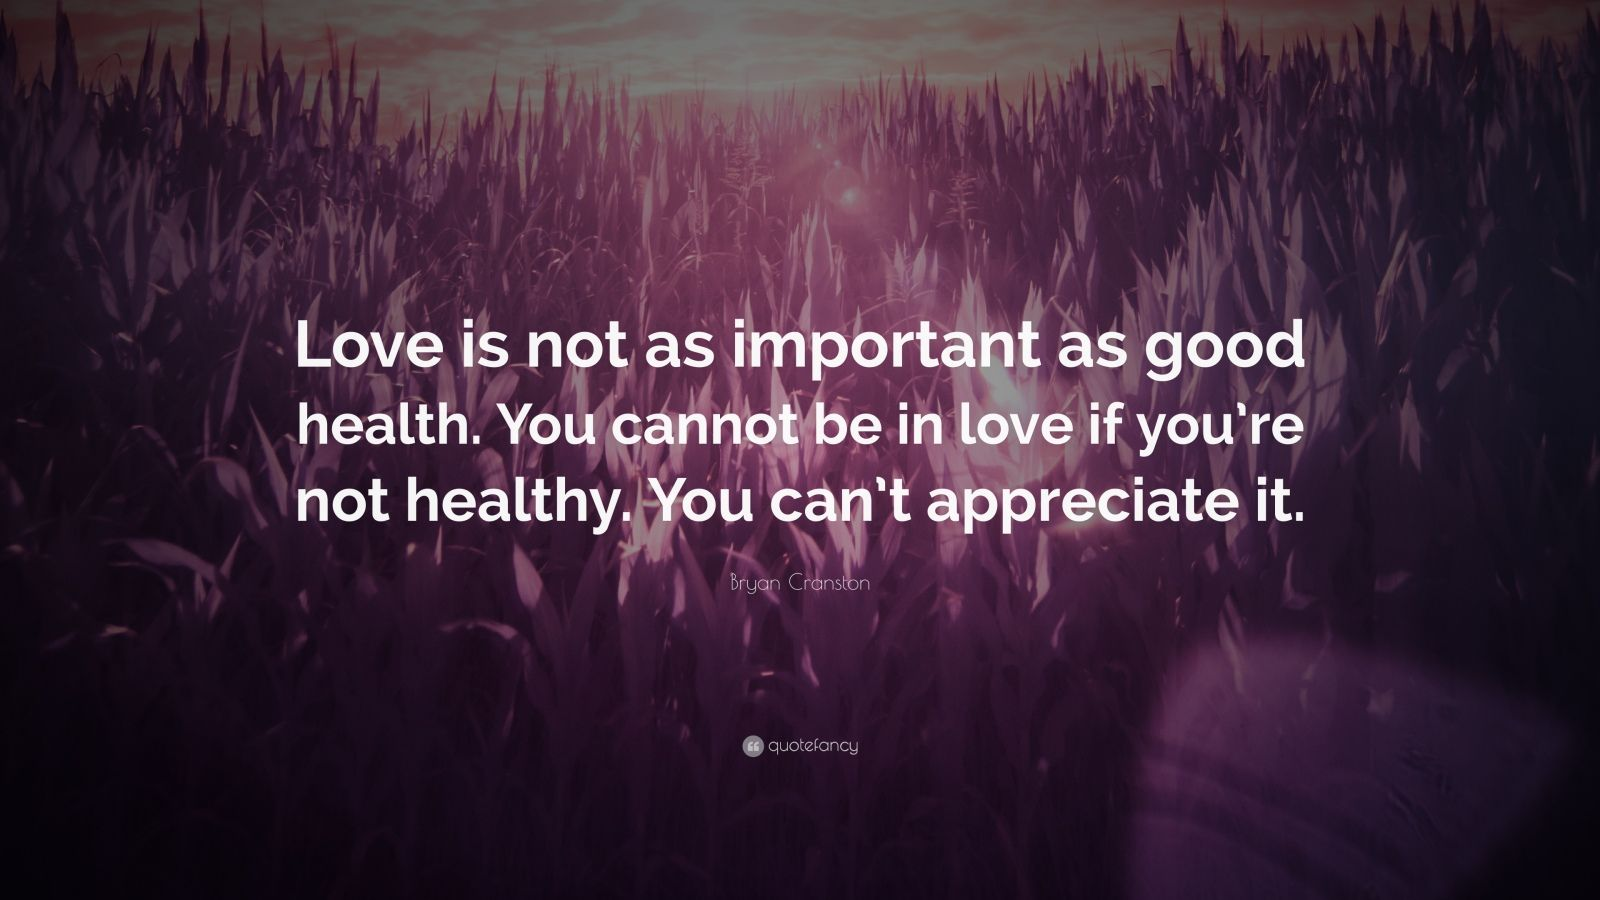 """Bryan Cranston Quote: """"Love is not as important as good health. You cannot be in love if you're not healthy. You can't appreciate it."""""""